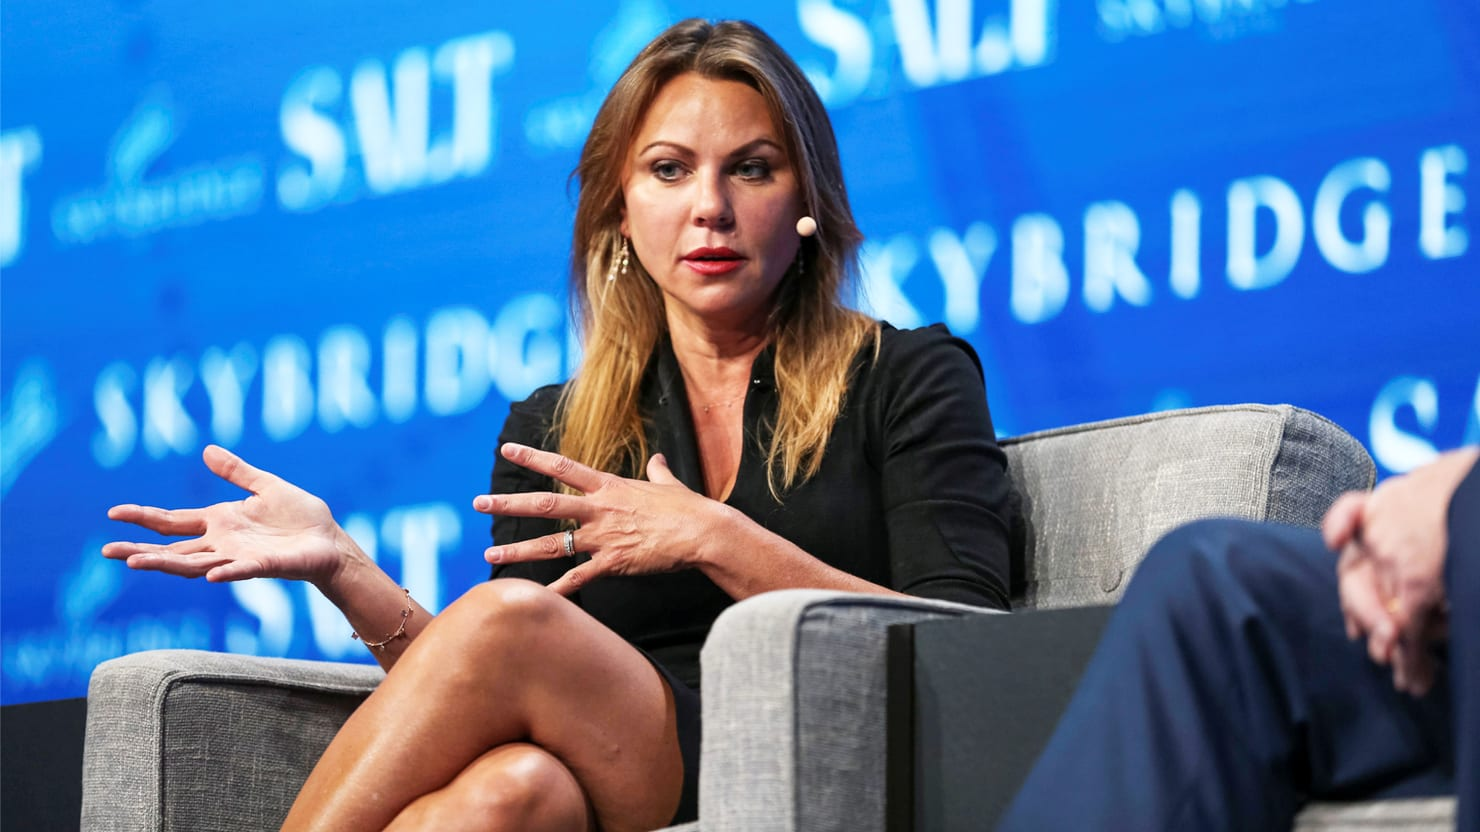 Fox Auto Group >> Lara Logan Returns to TV as a Right-Wing Heroine at Sinclair, Condemning 'Moral Cowards' at CBS